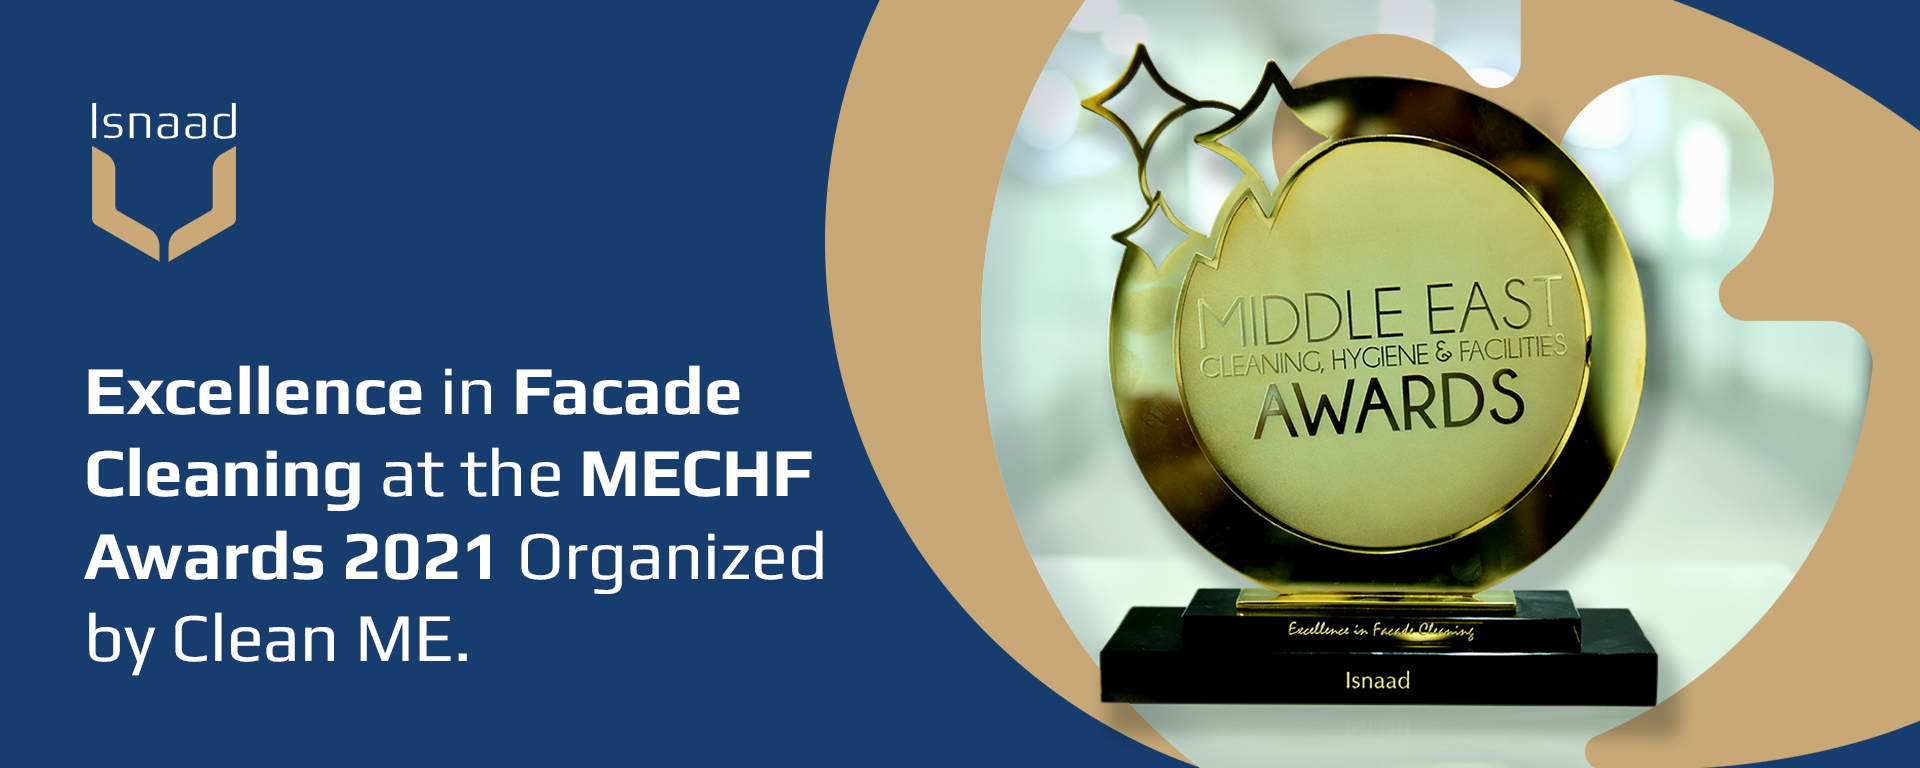 Excellence in Facade Cleaning at the MECHF Awards 2021 Organized by Clean ME.